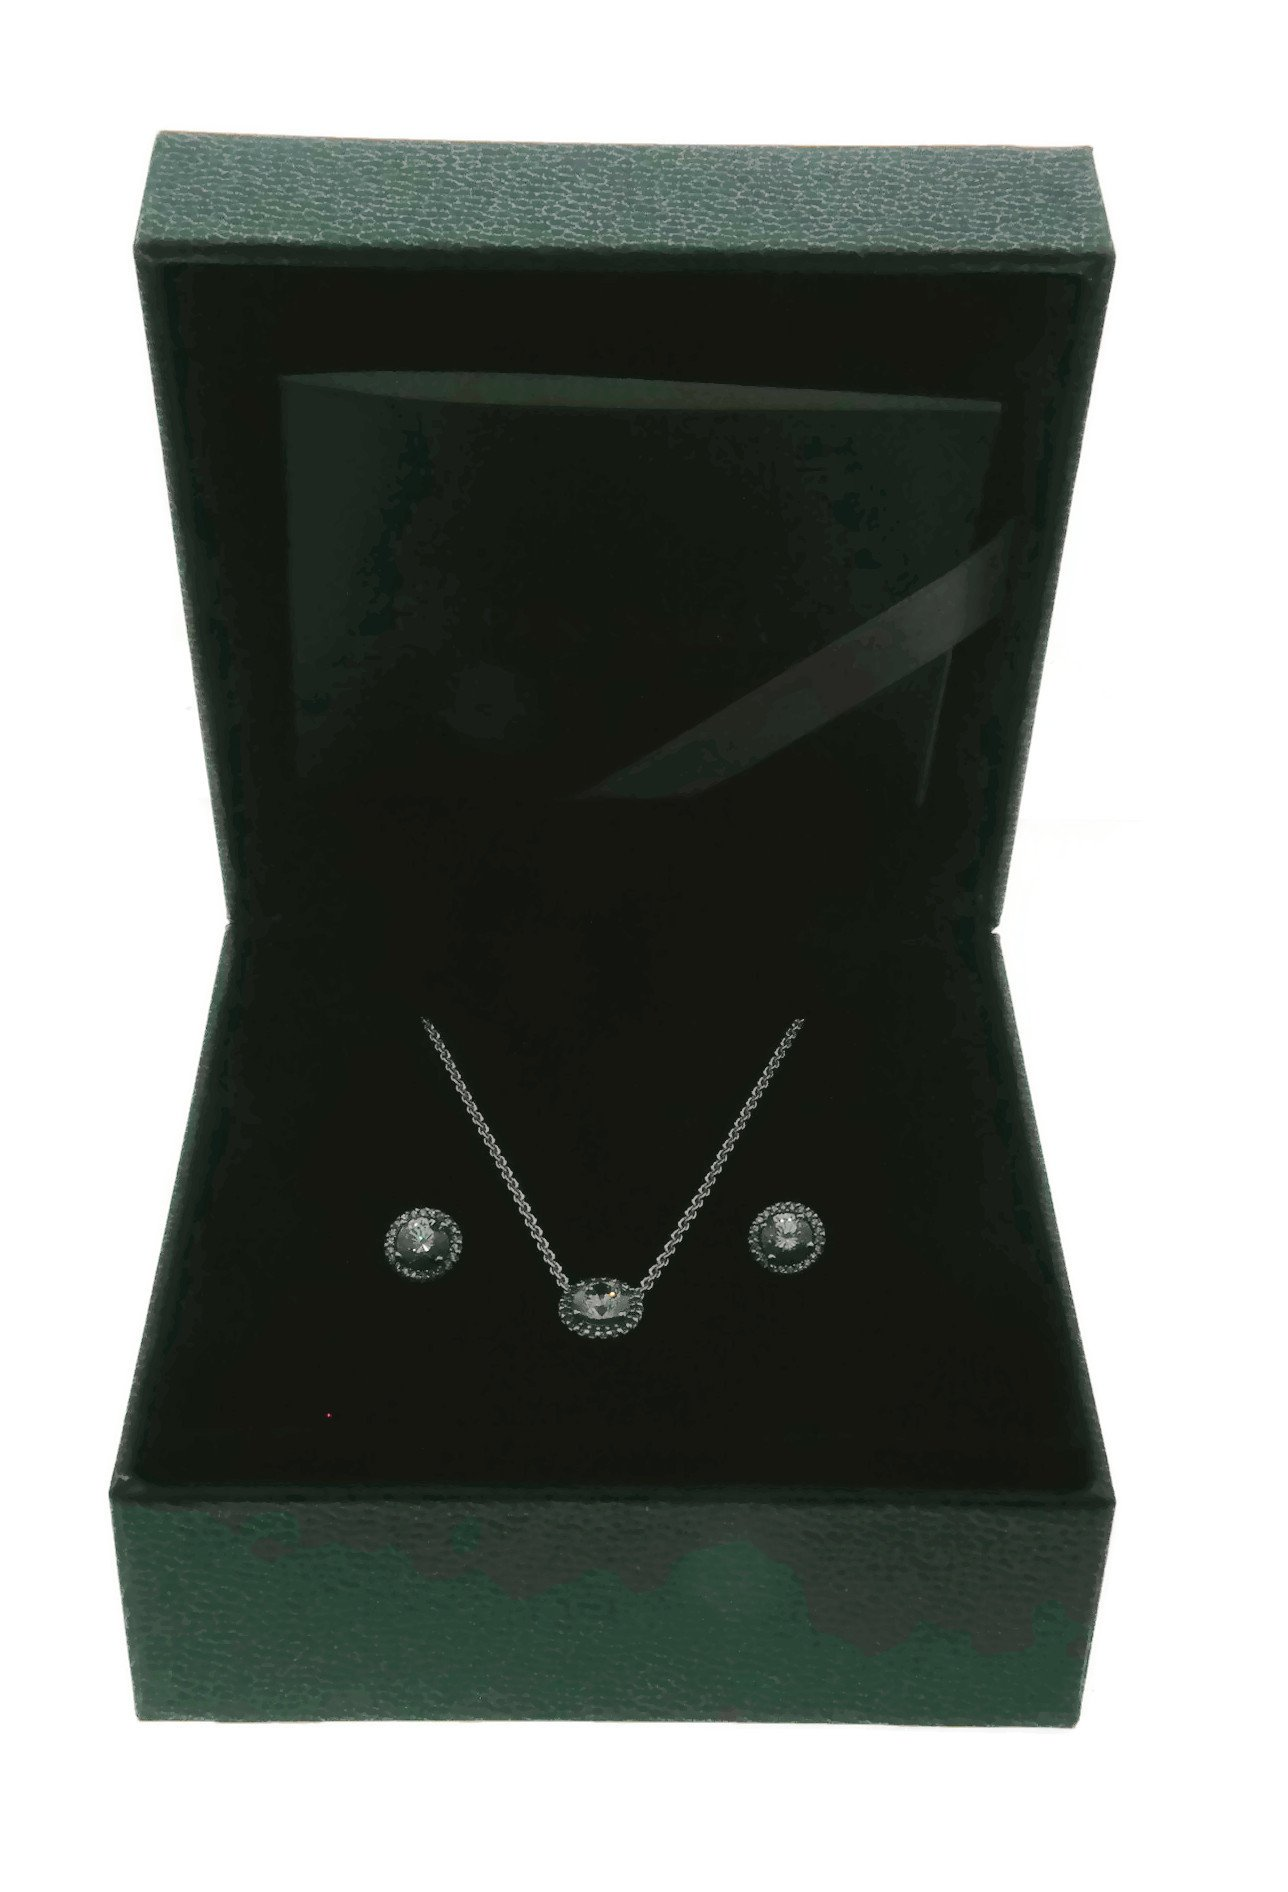 PANDORA Classic Elegance Jewelry Gift Set, Necklace & Earrings, Clear CZ B800645